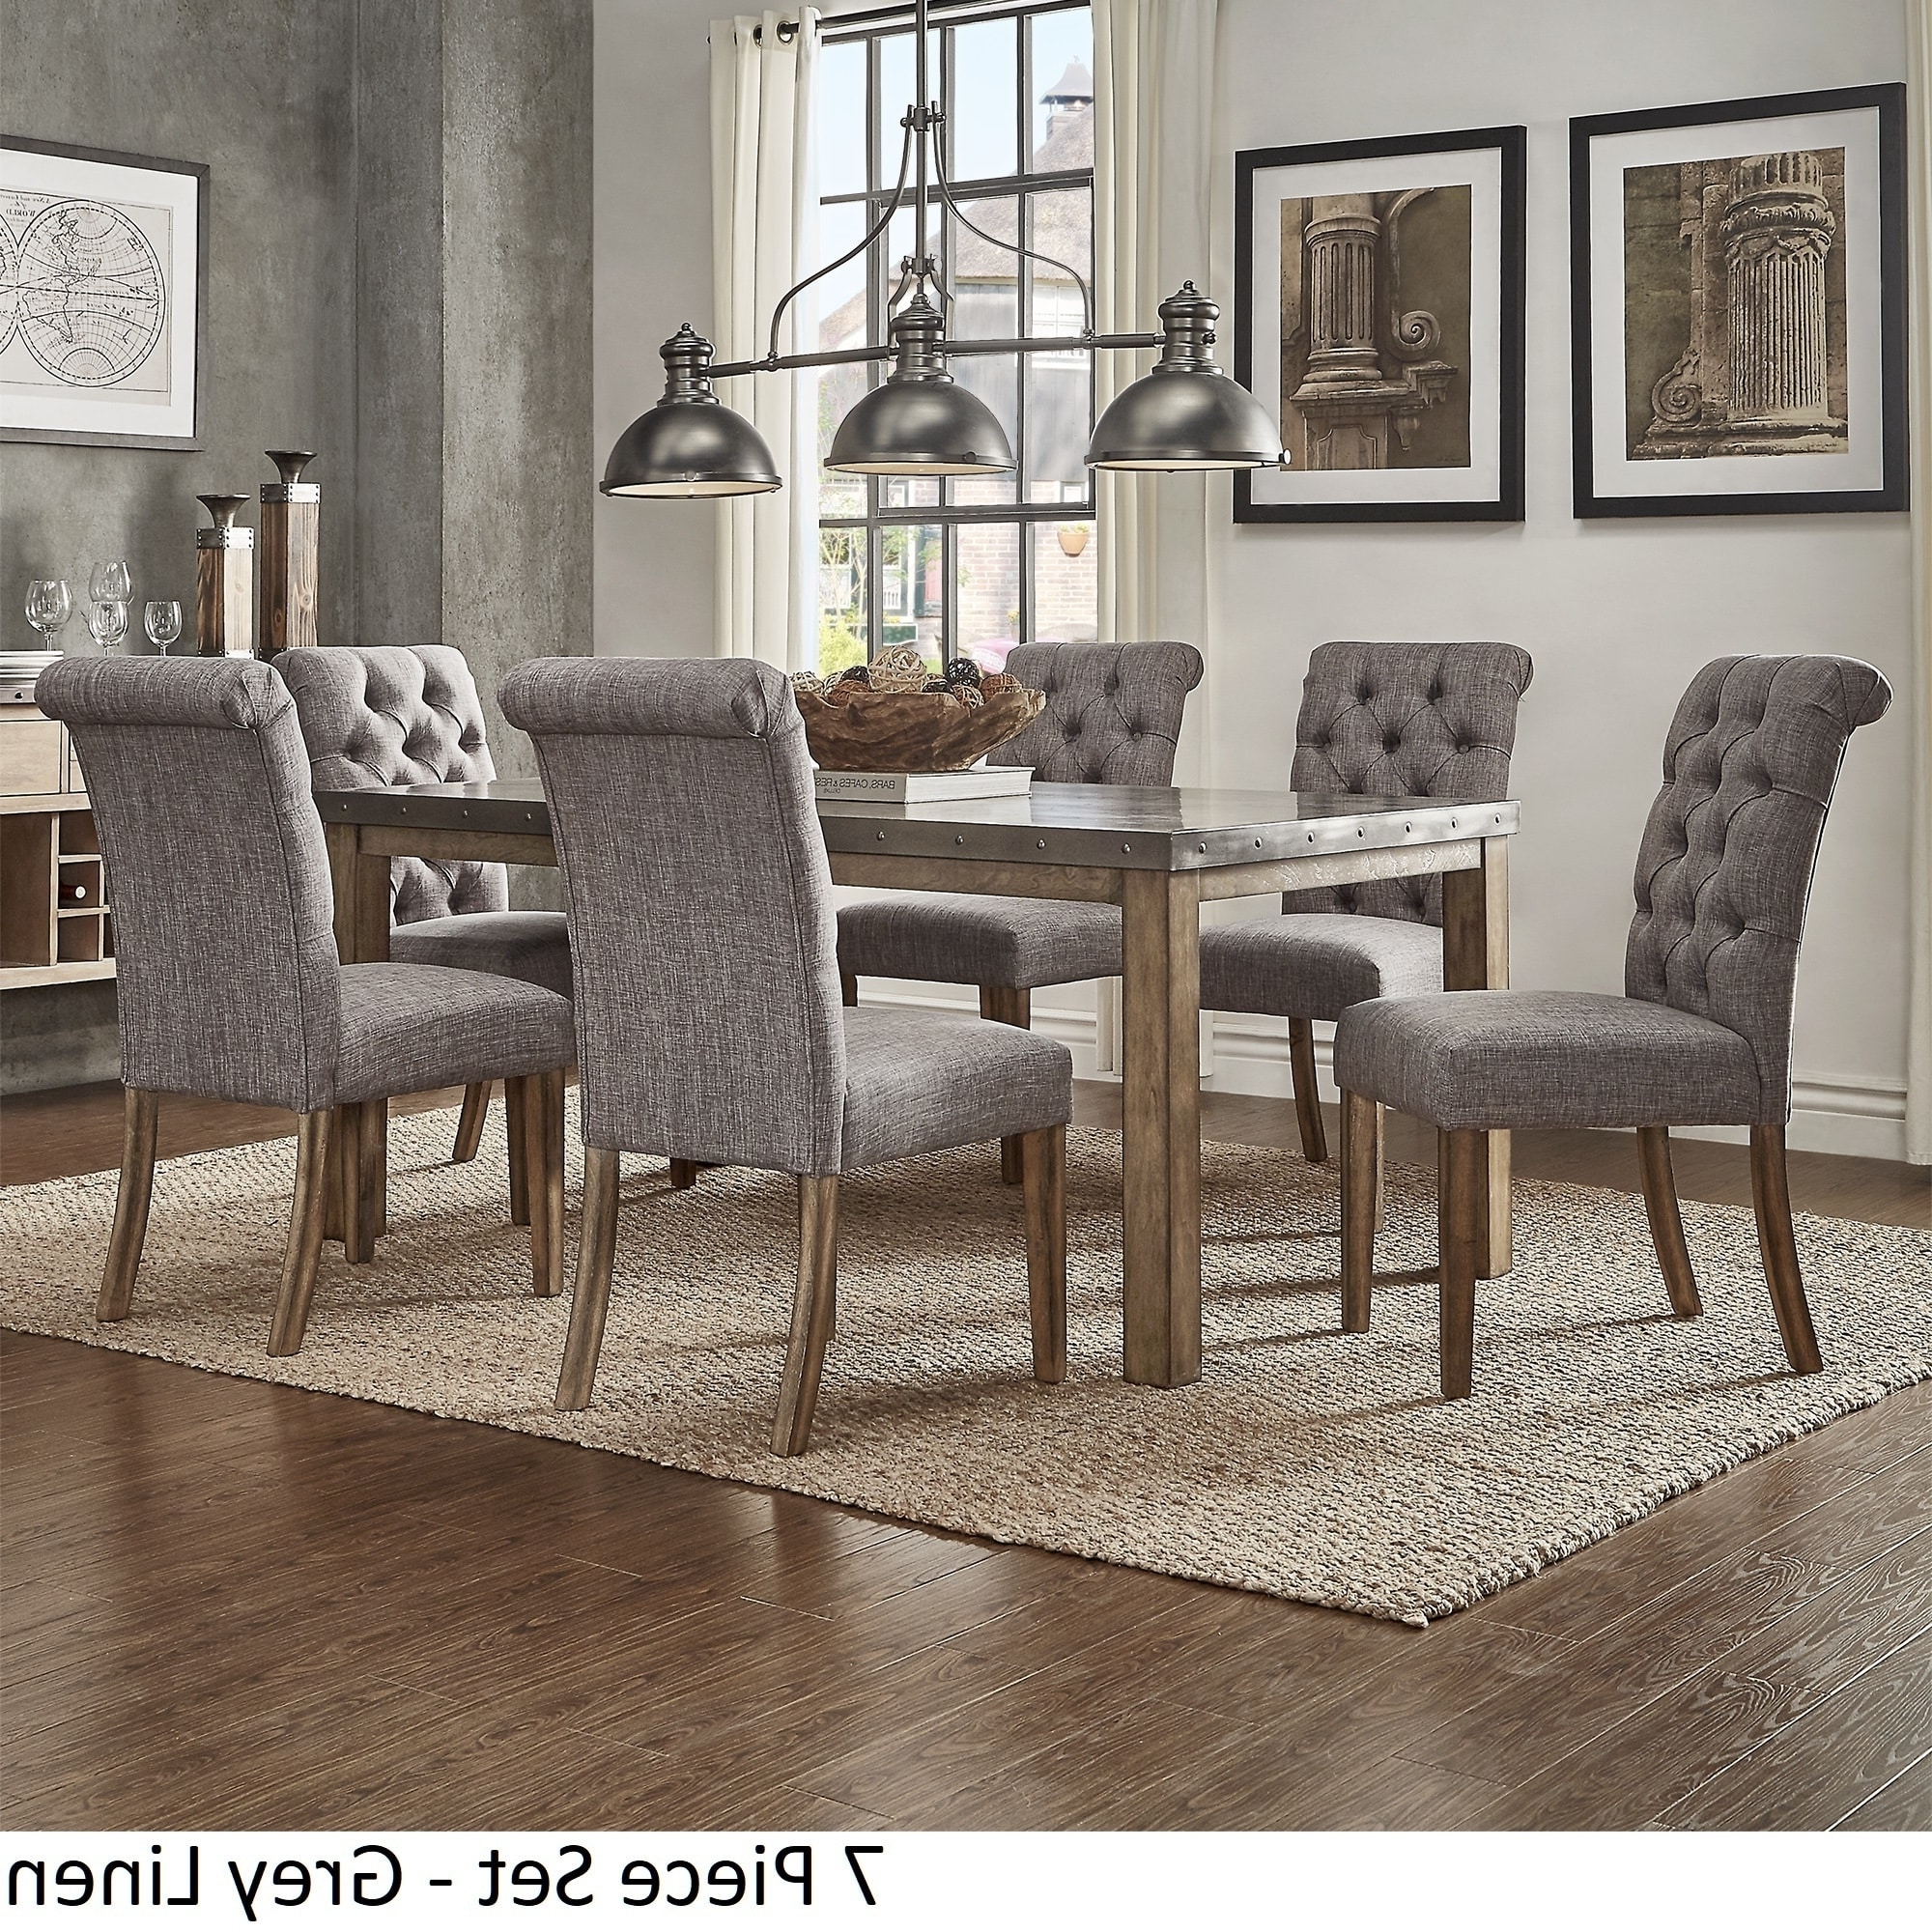 Cassidy Stainless Steel Top Rectangle Dining Table Setinspire Q Regarding Well Known Crawford 6 Piece Rectangle Dining Sets (View 22 of 25)